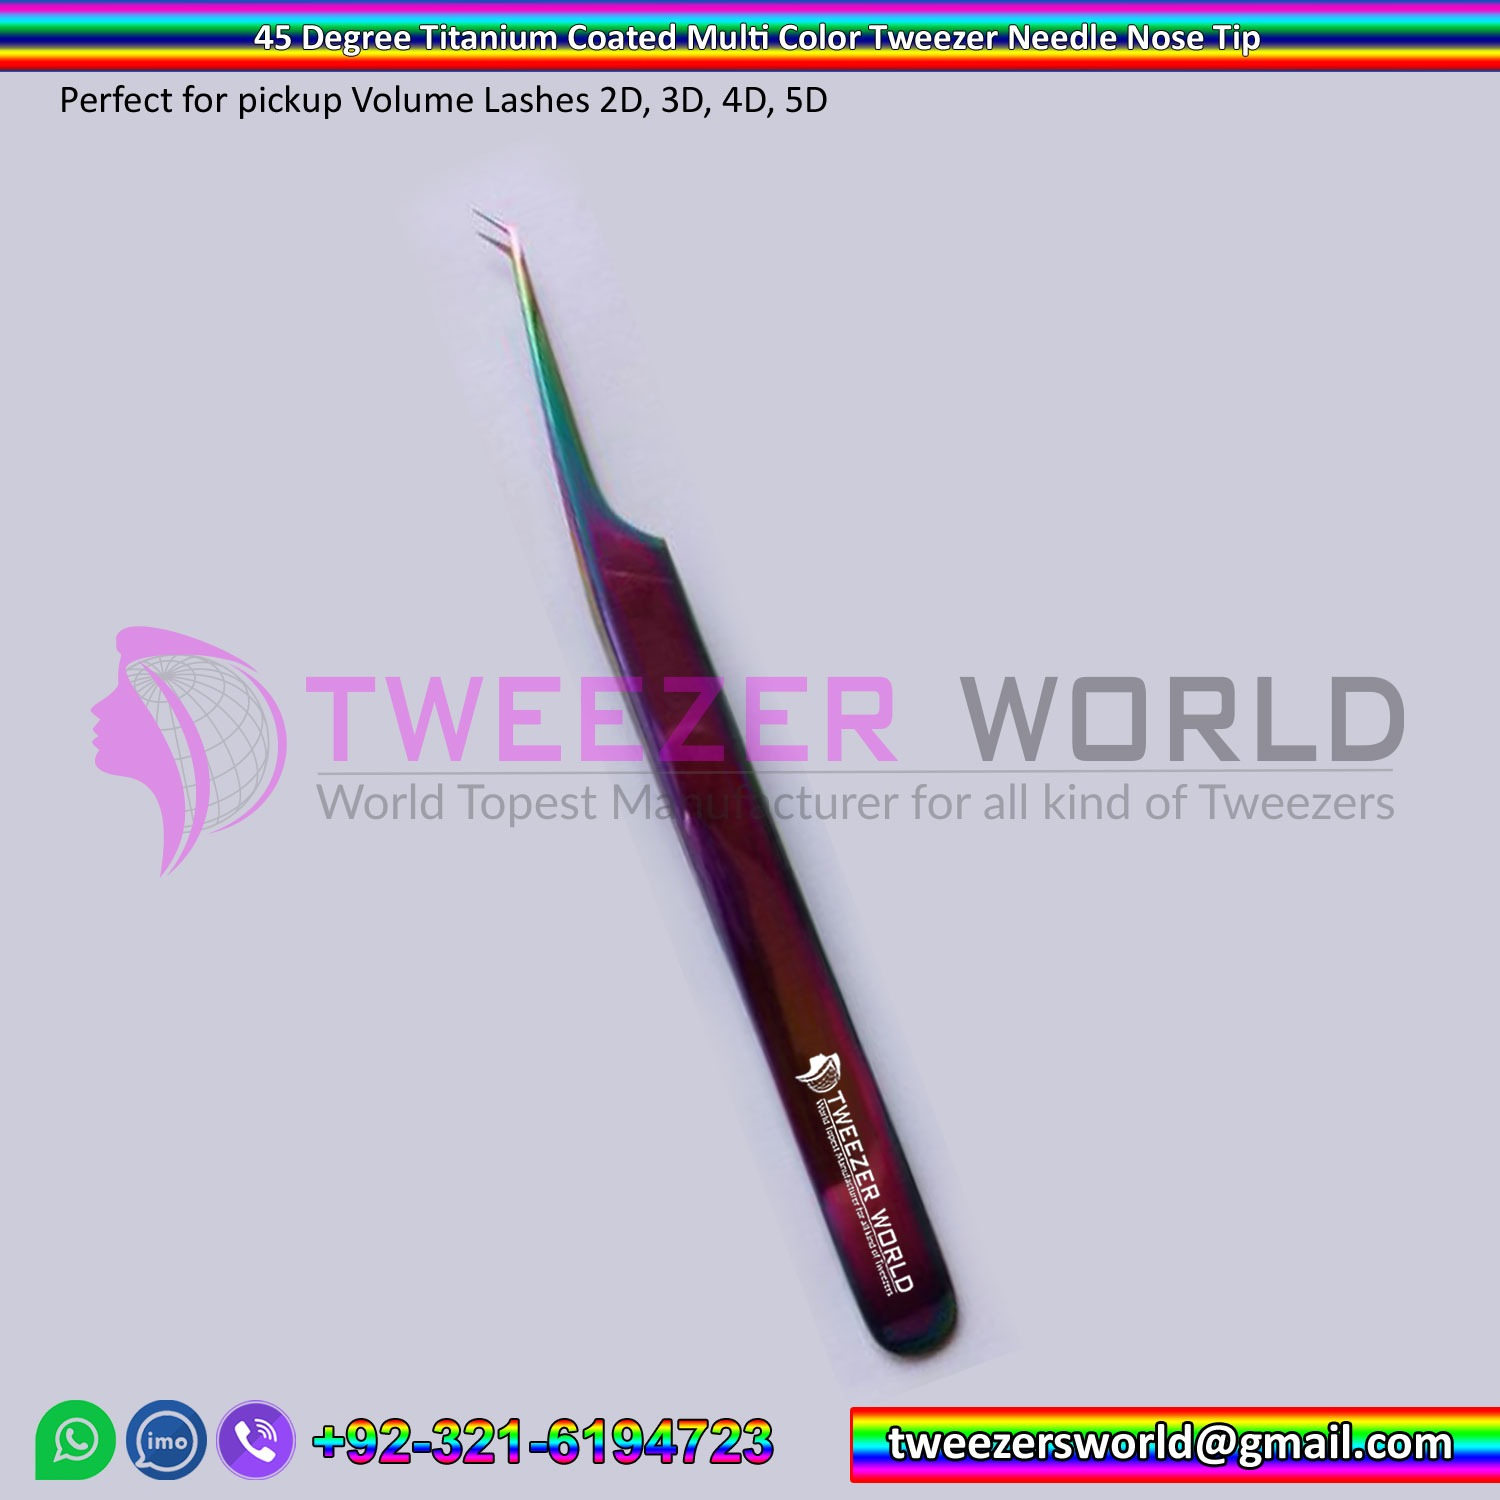 45 Degree Titanium Coated Multi Color Tweezer Needle Nose Tip